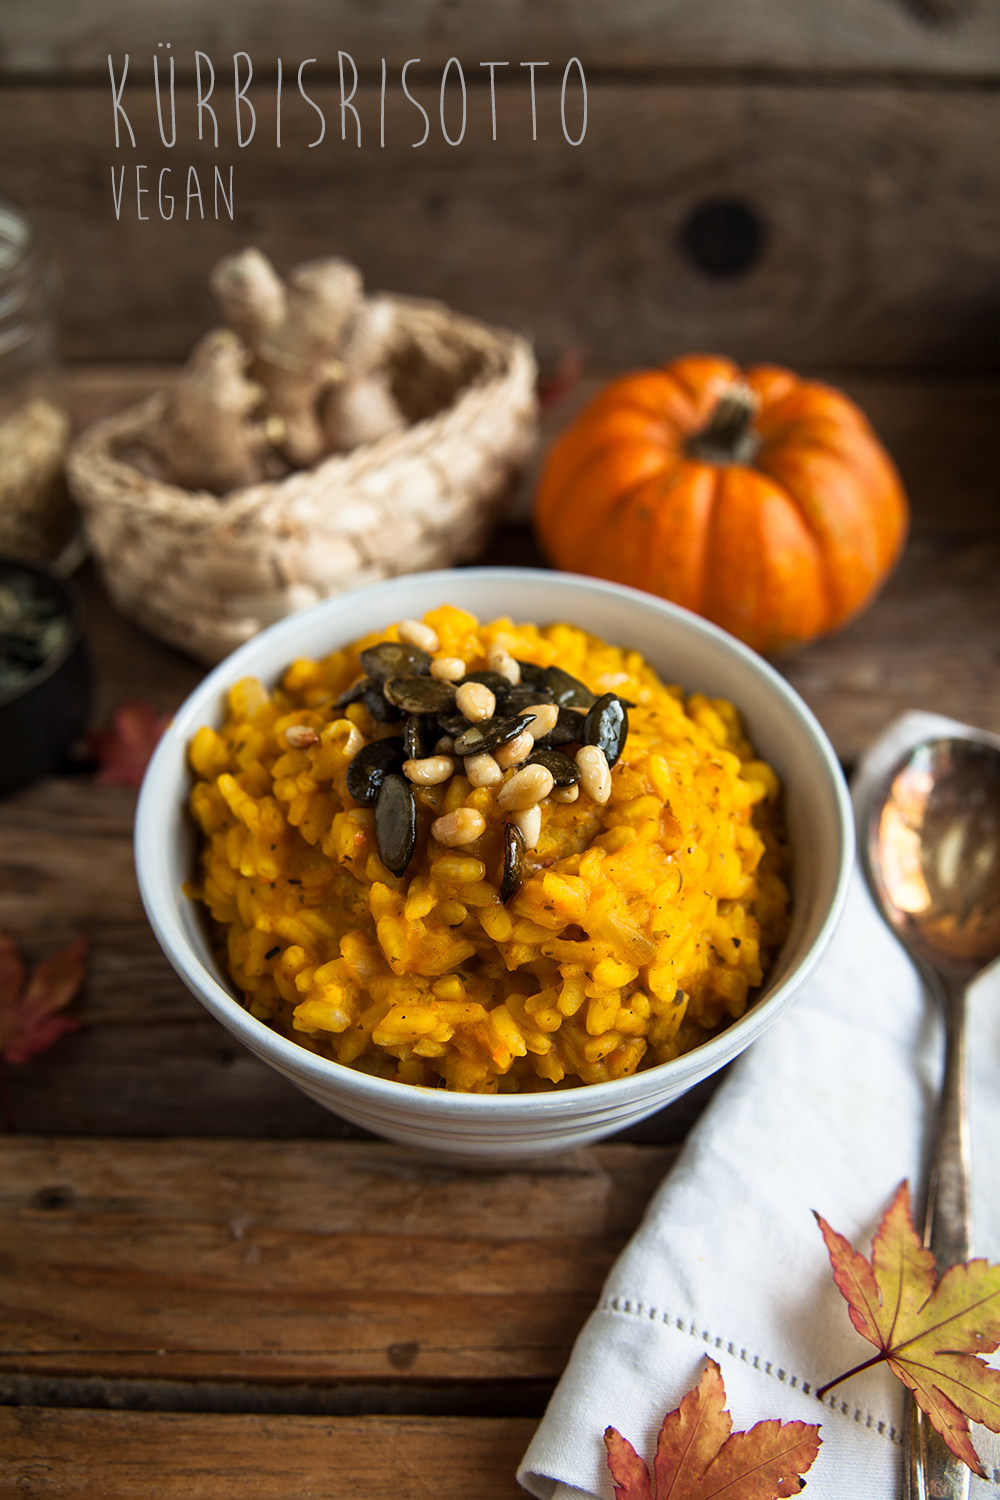 Kürbisrisotto vegan Pumpkin risotto